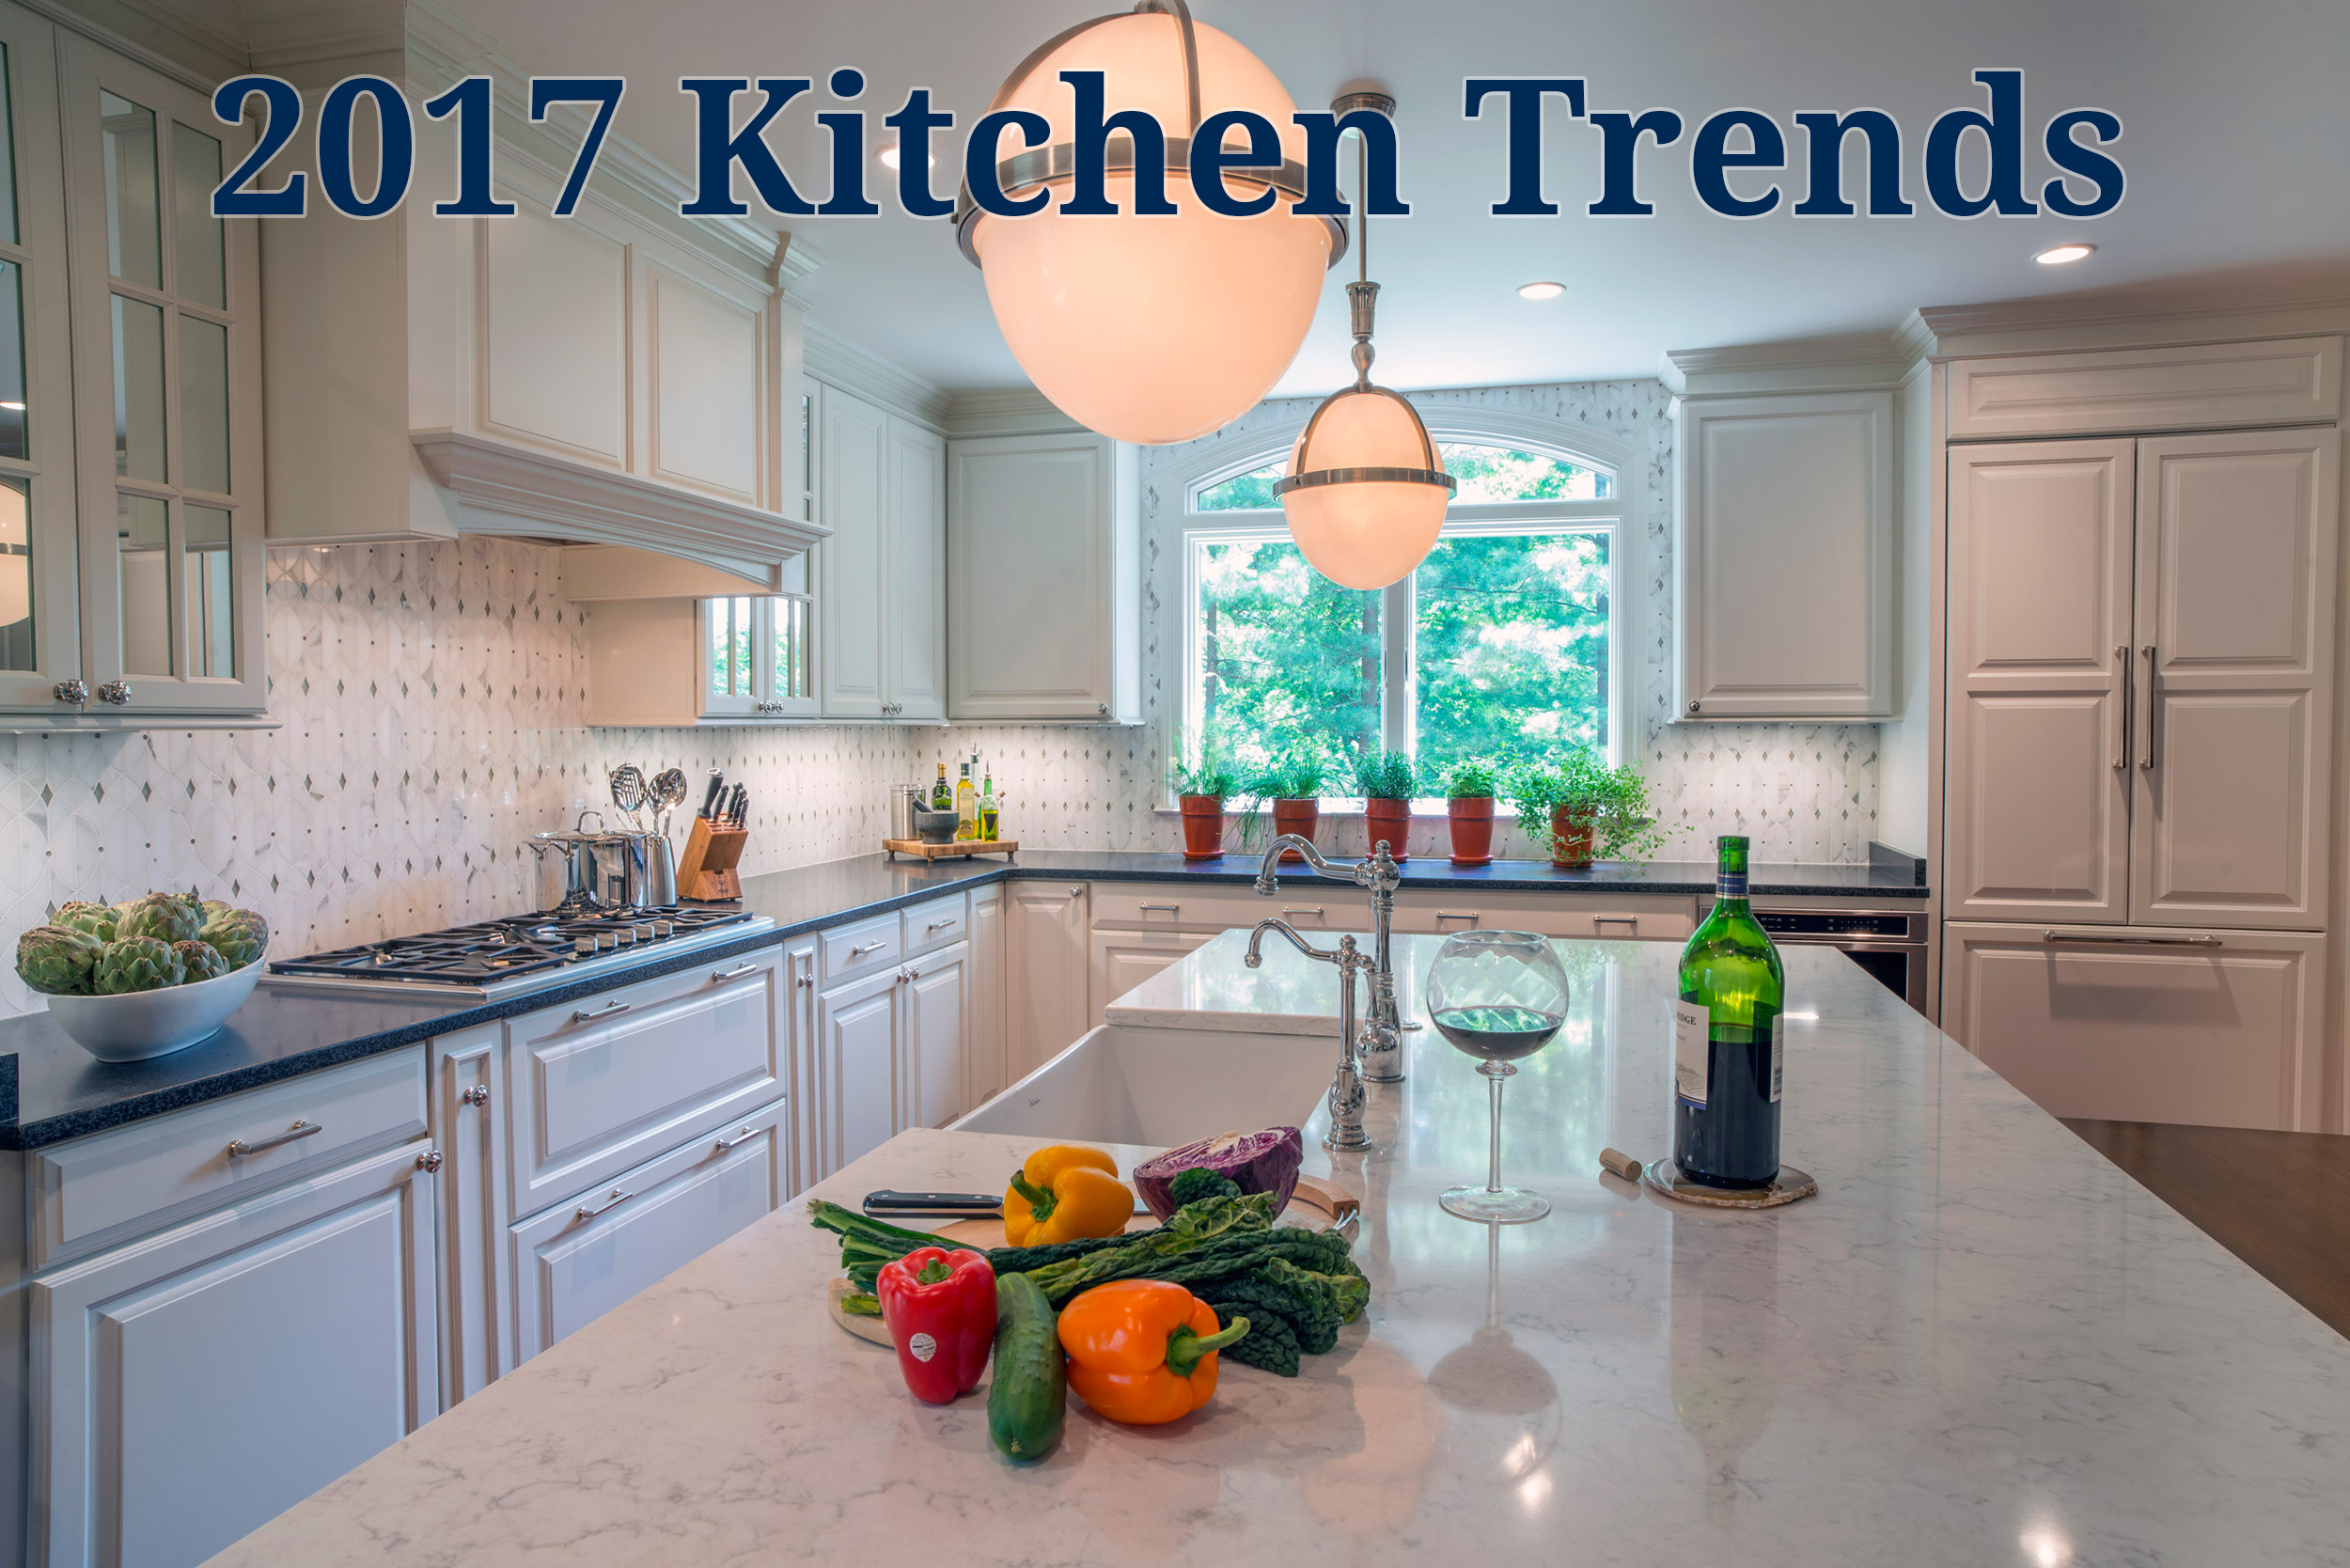 50 Best Kitchen Backsplash Ideas For 2017: Kitchen Trends For 2017